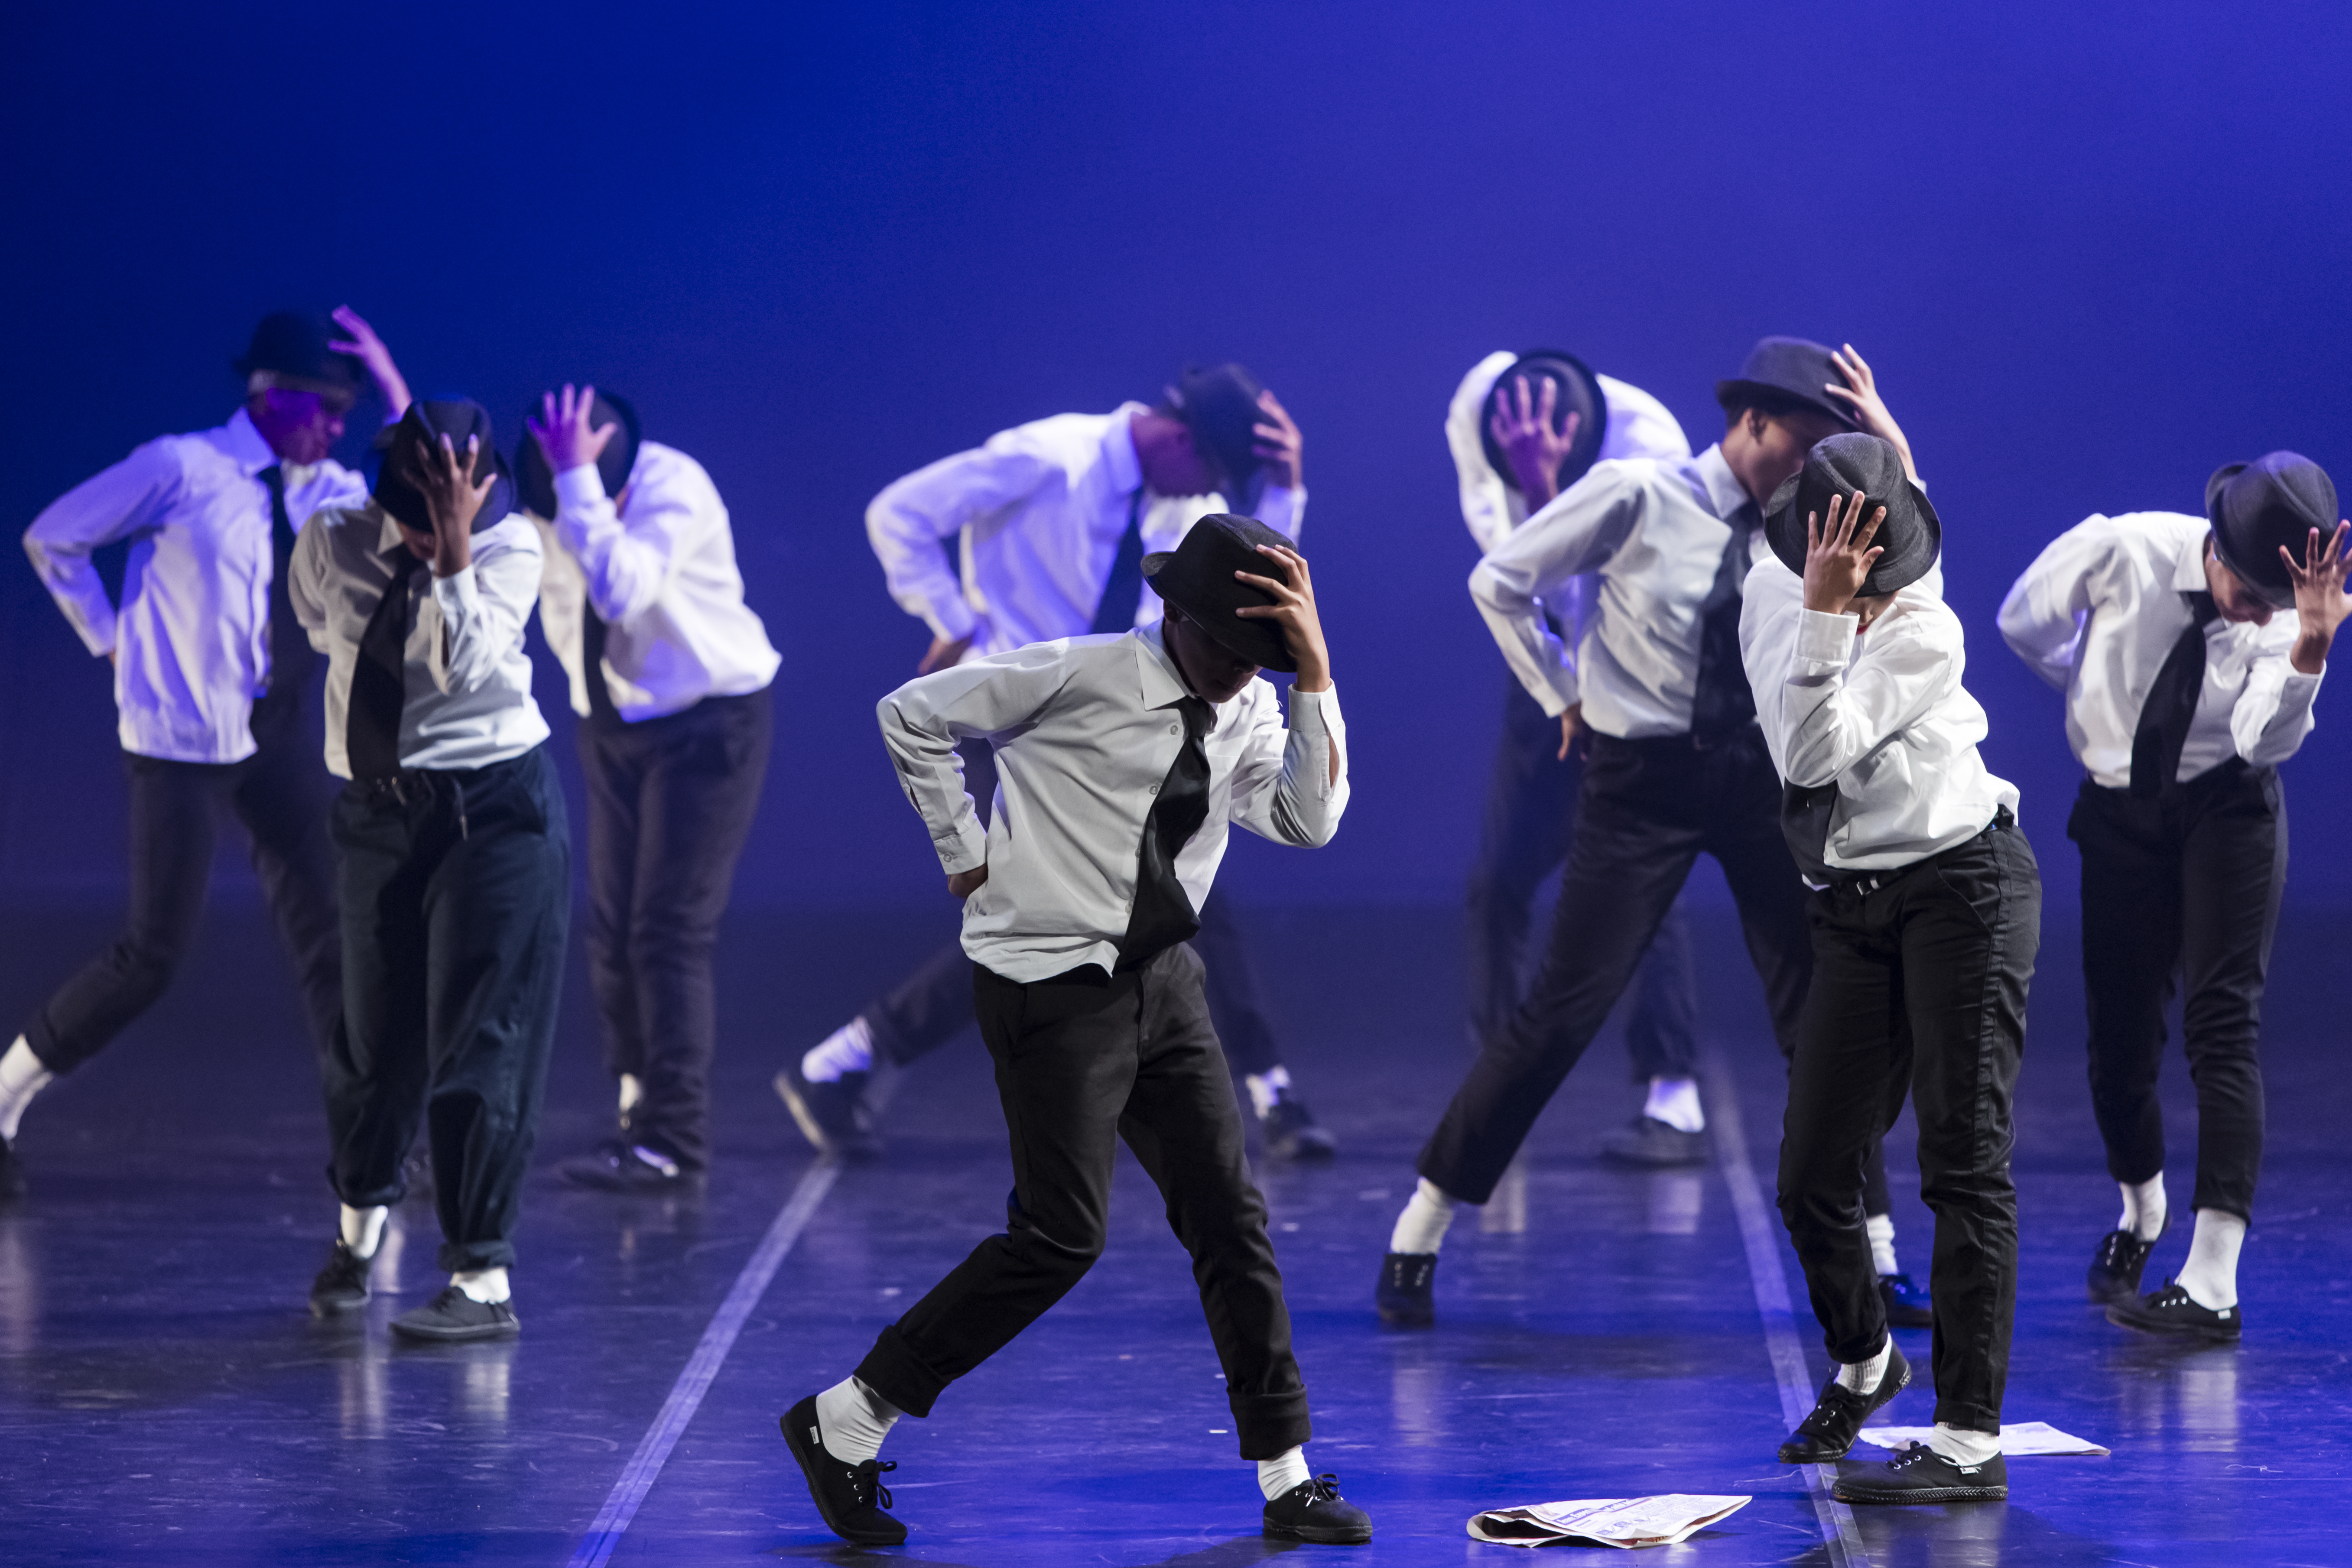 Dance Performance Wallpapers High Quality | Download Free